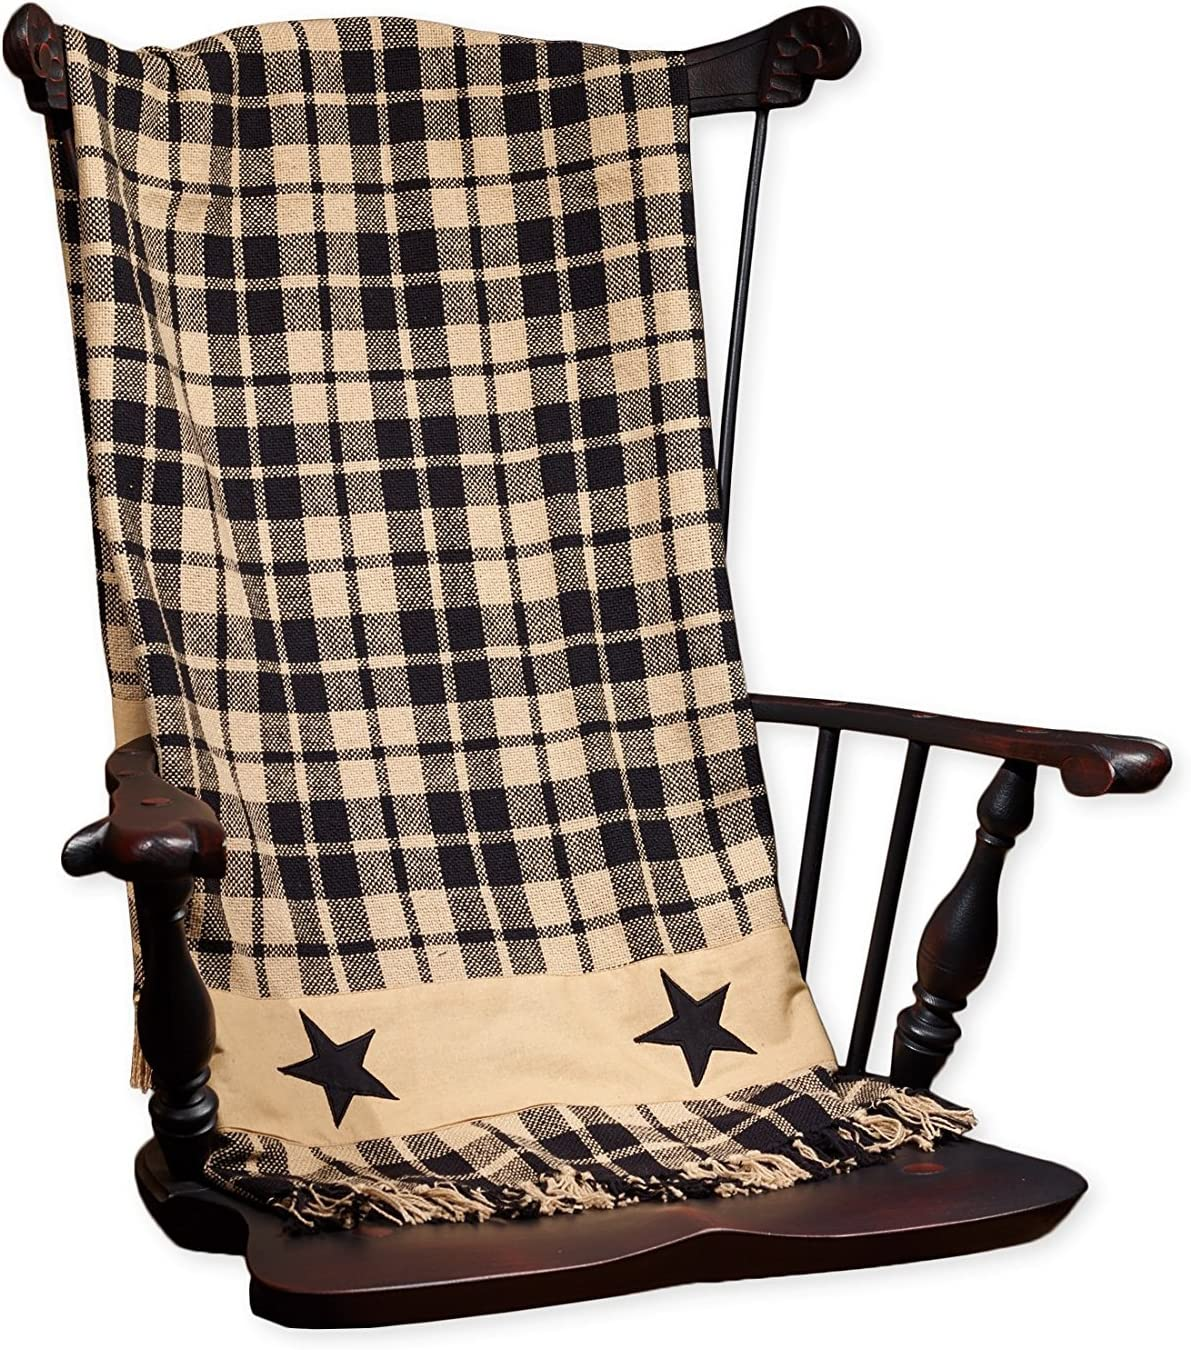 Black Farmhouse Star Throw, 50x60-Inch